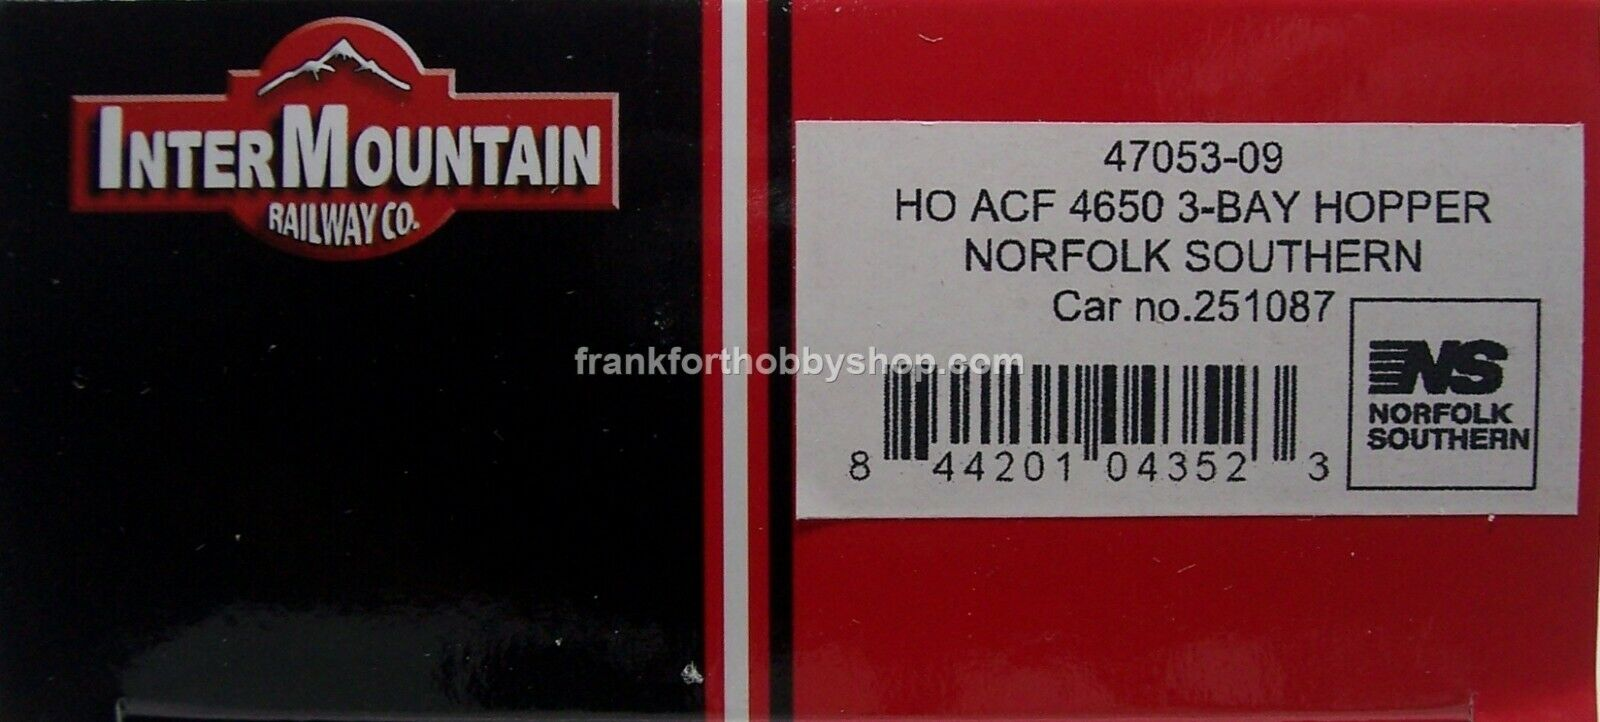 Intermountain  47053-09 HO ACF4650 CU. FT.3BAY Hopper Norfolk Southern  251087